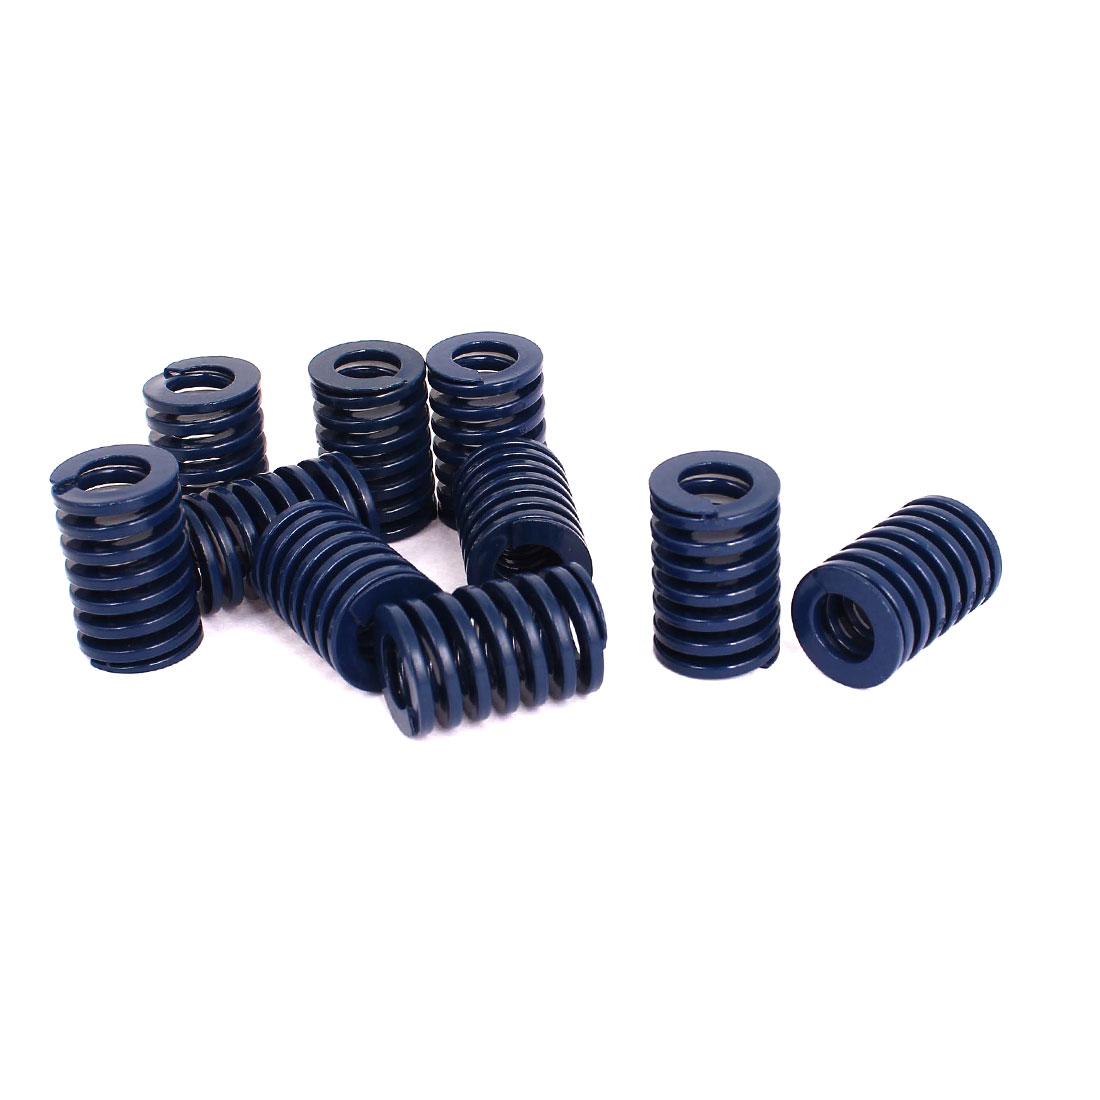 20mm OD 30mm Long Light Load Stamping Compression Mold Die Spring Blue 10pcs